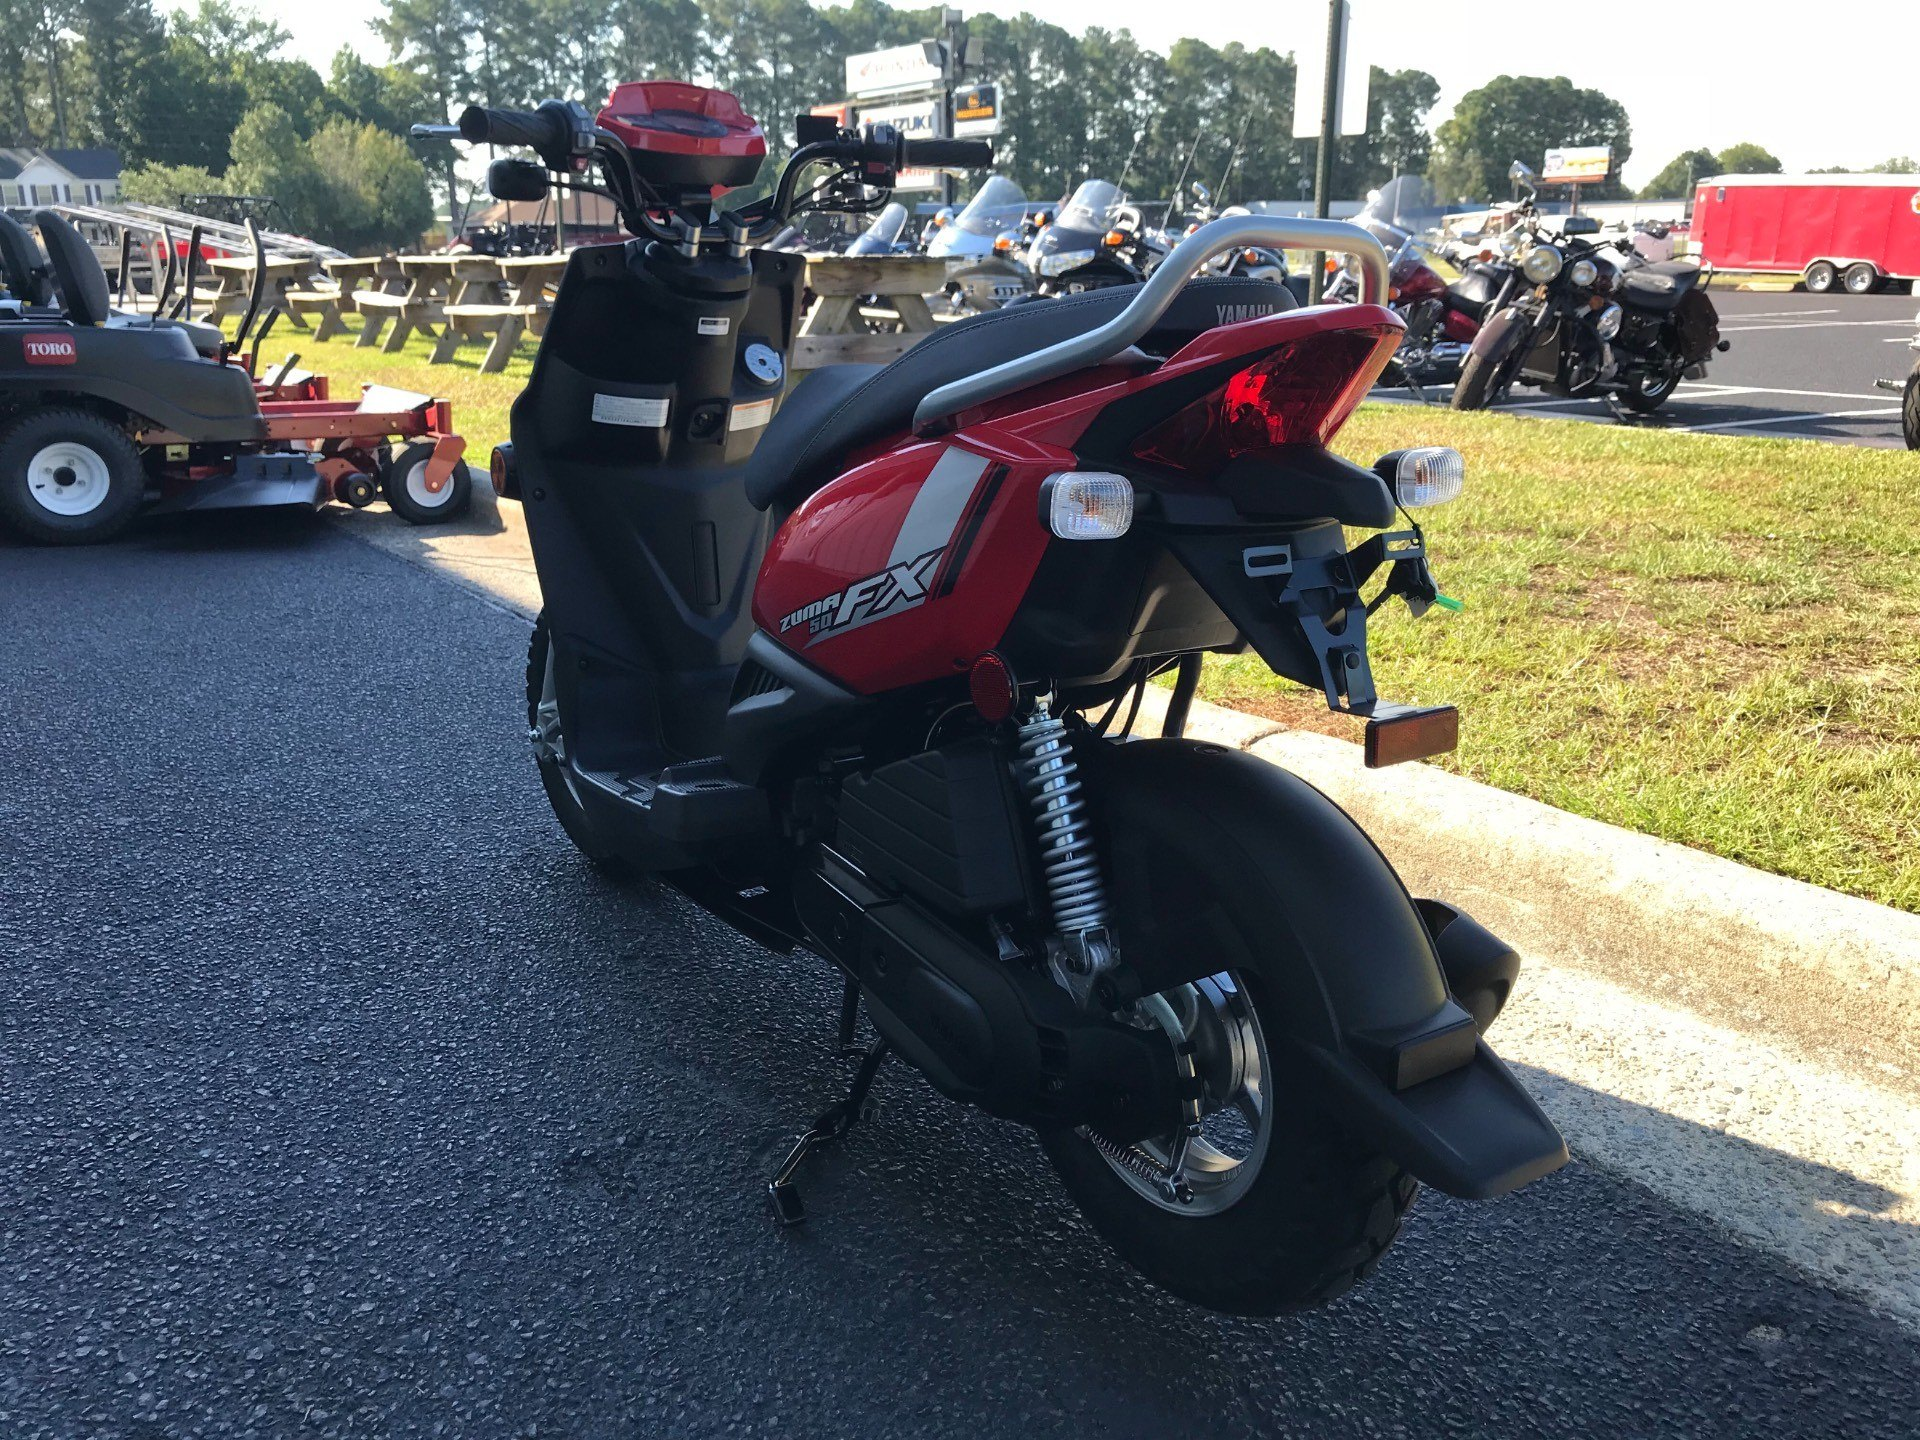 2018 Yamaha Zuma 50FX in Greenville, North Carolina - Photo 8